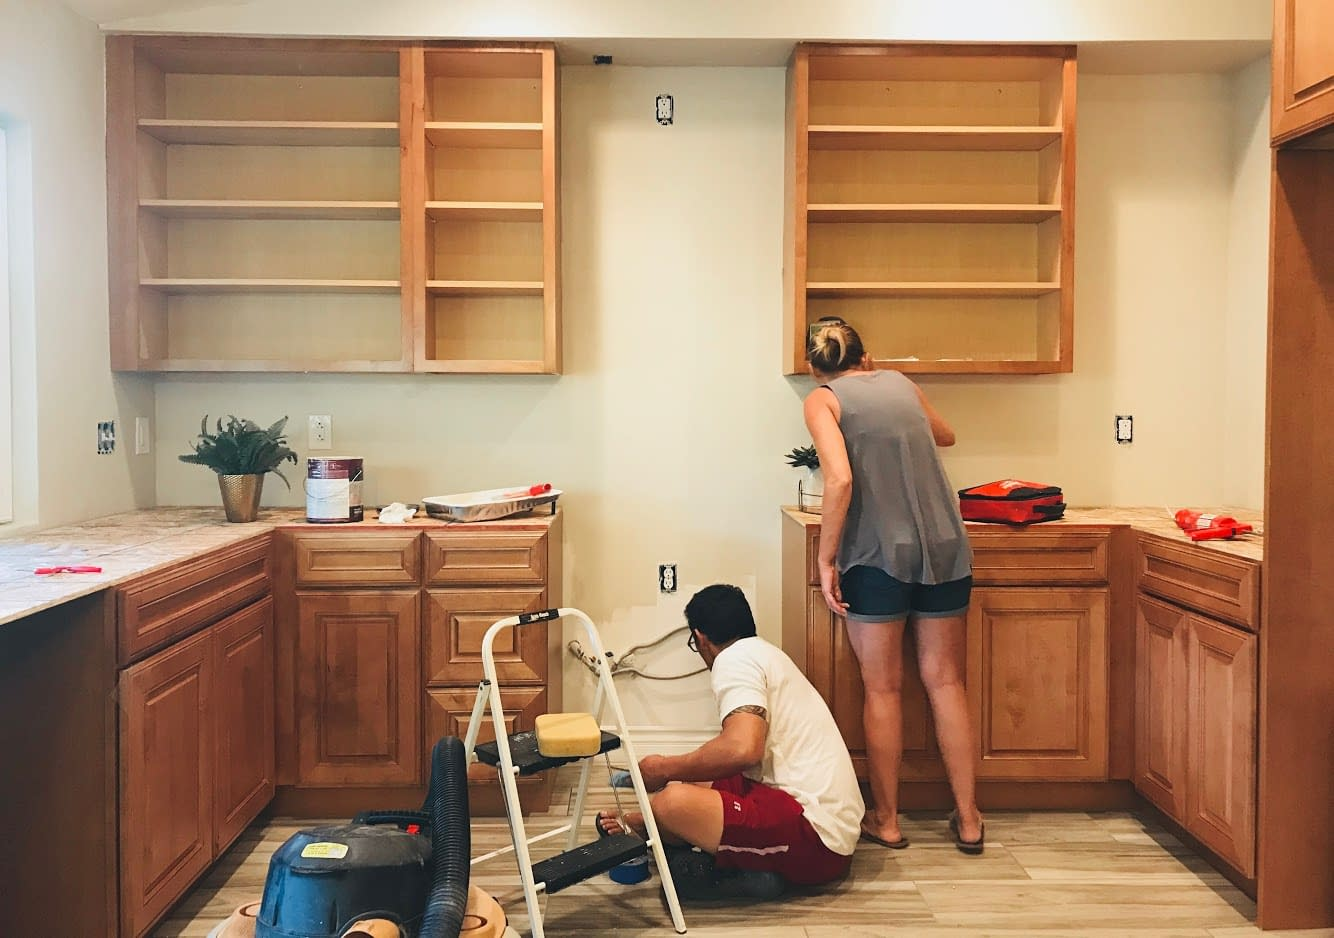 kitchen-renovation-diy-vs-hire-a-professional